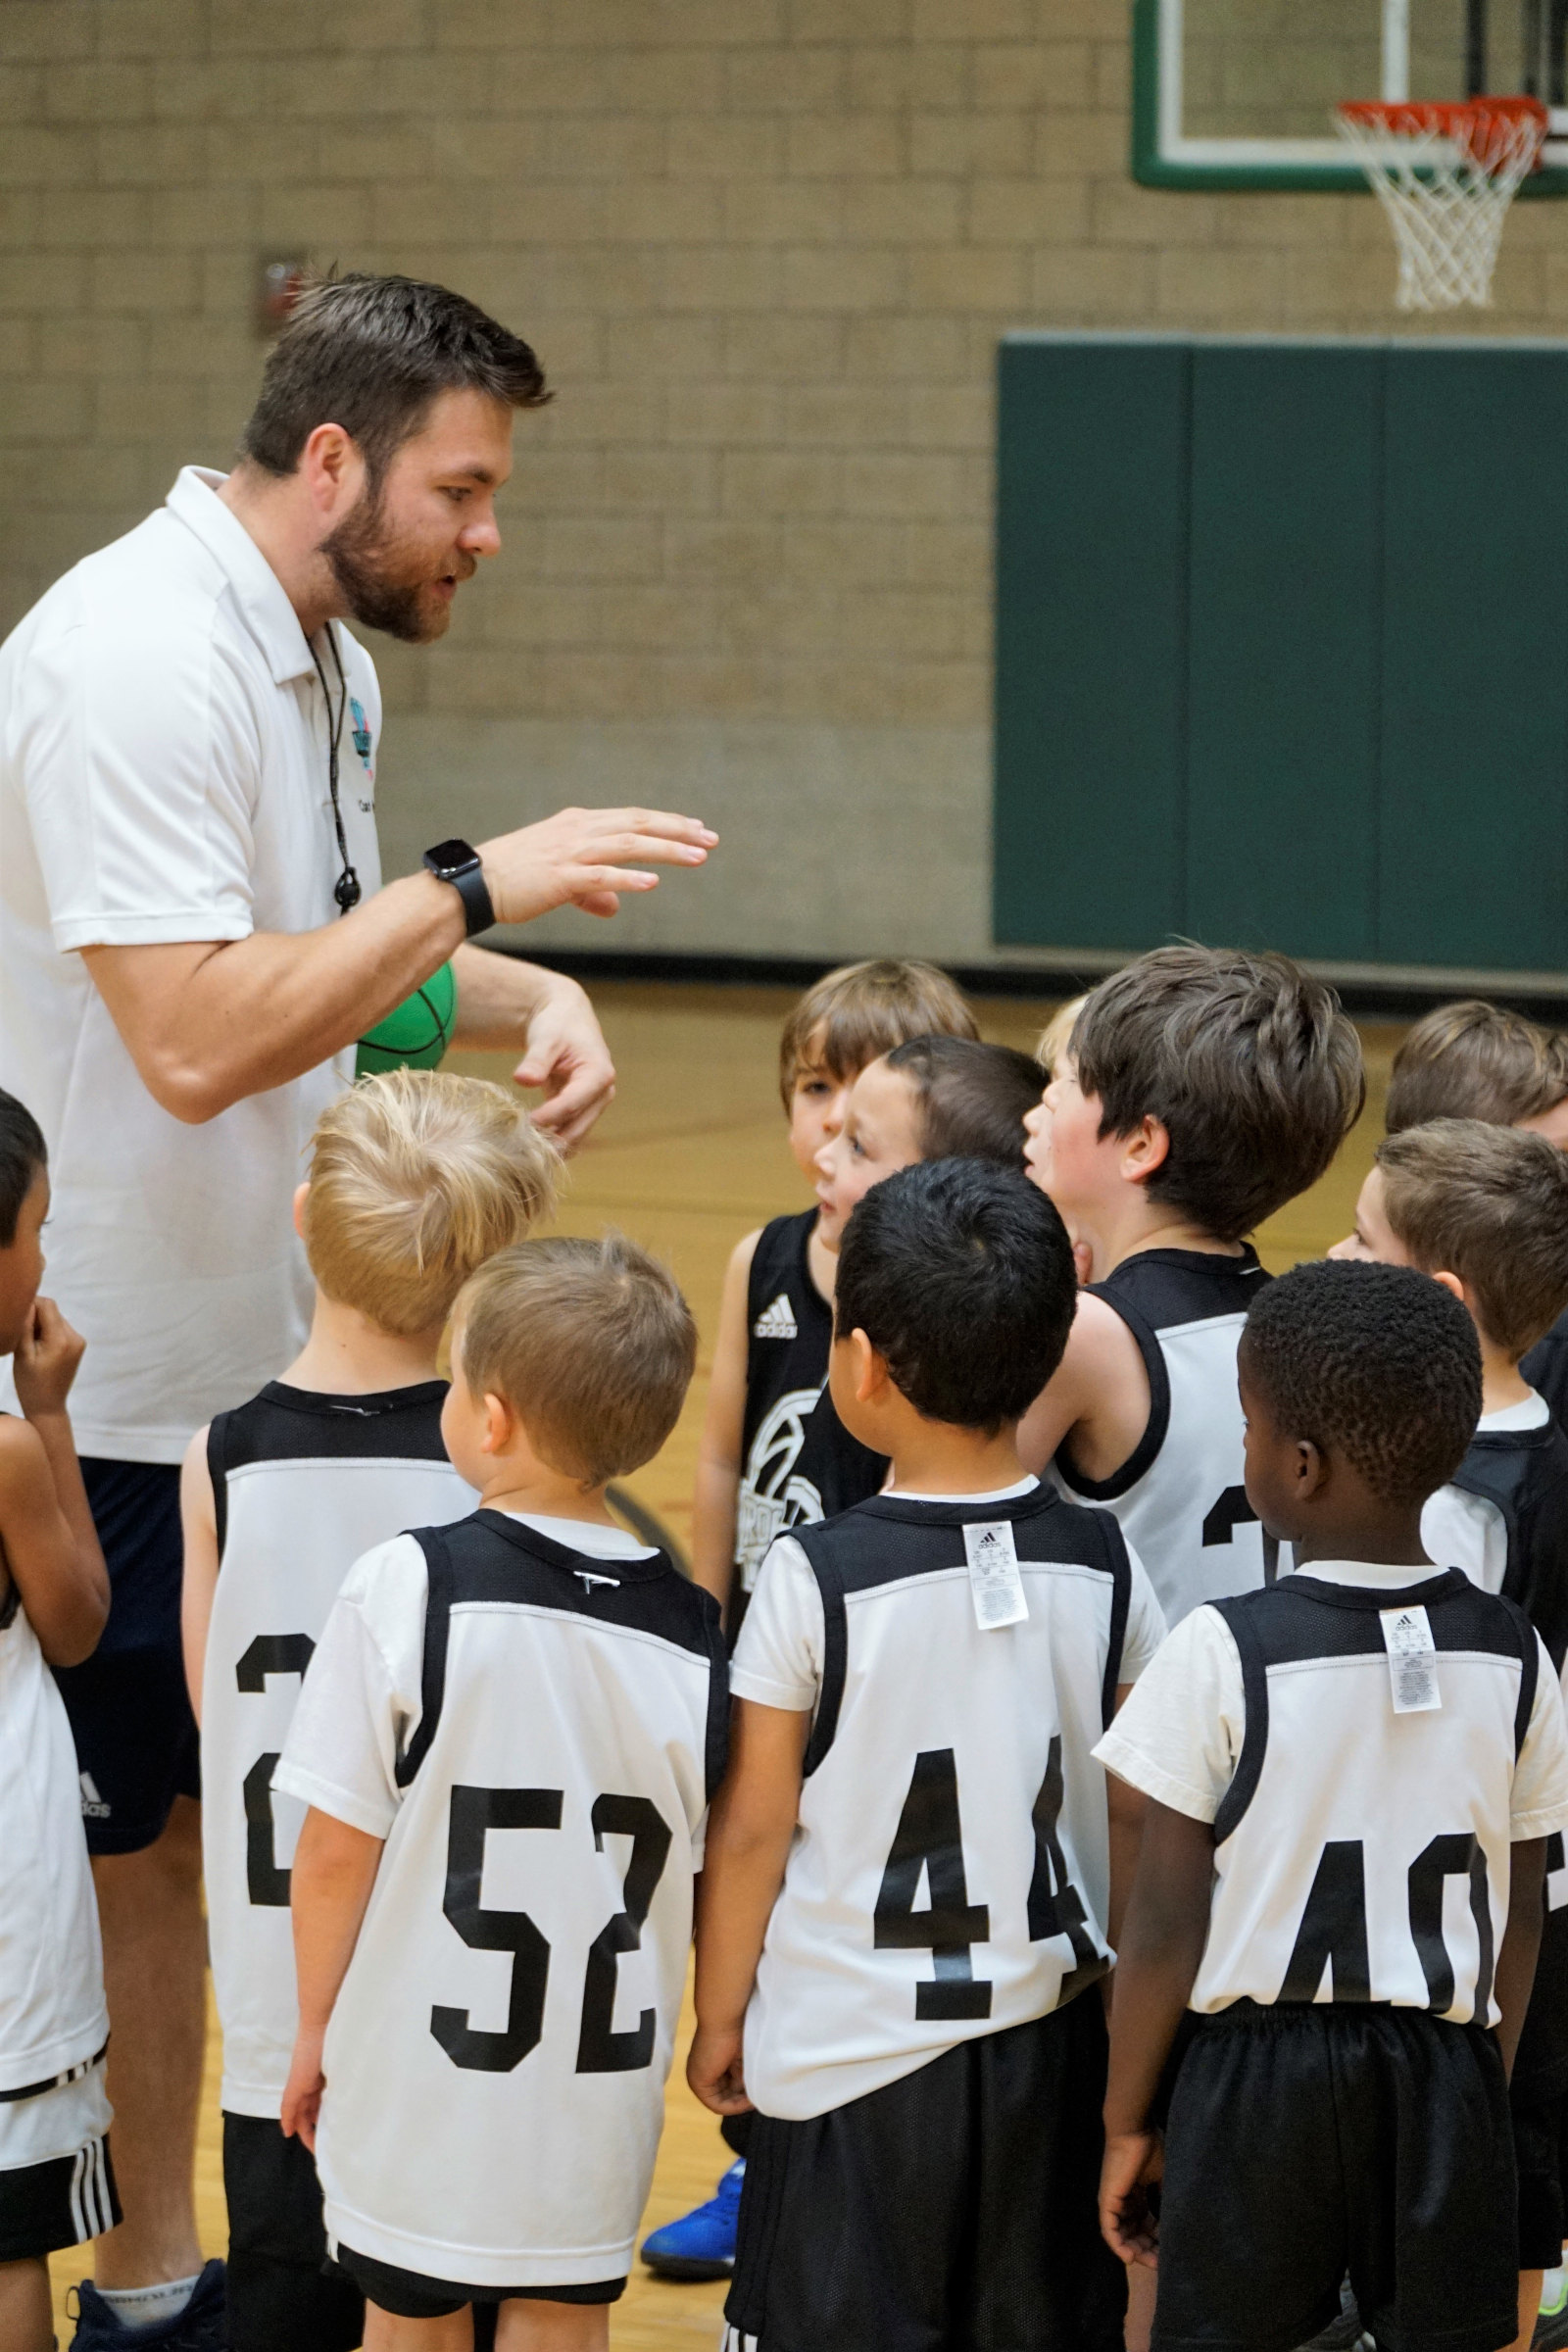 Sean Coaching Youngsters